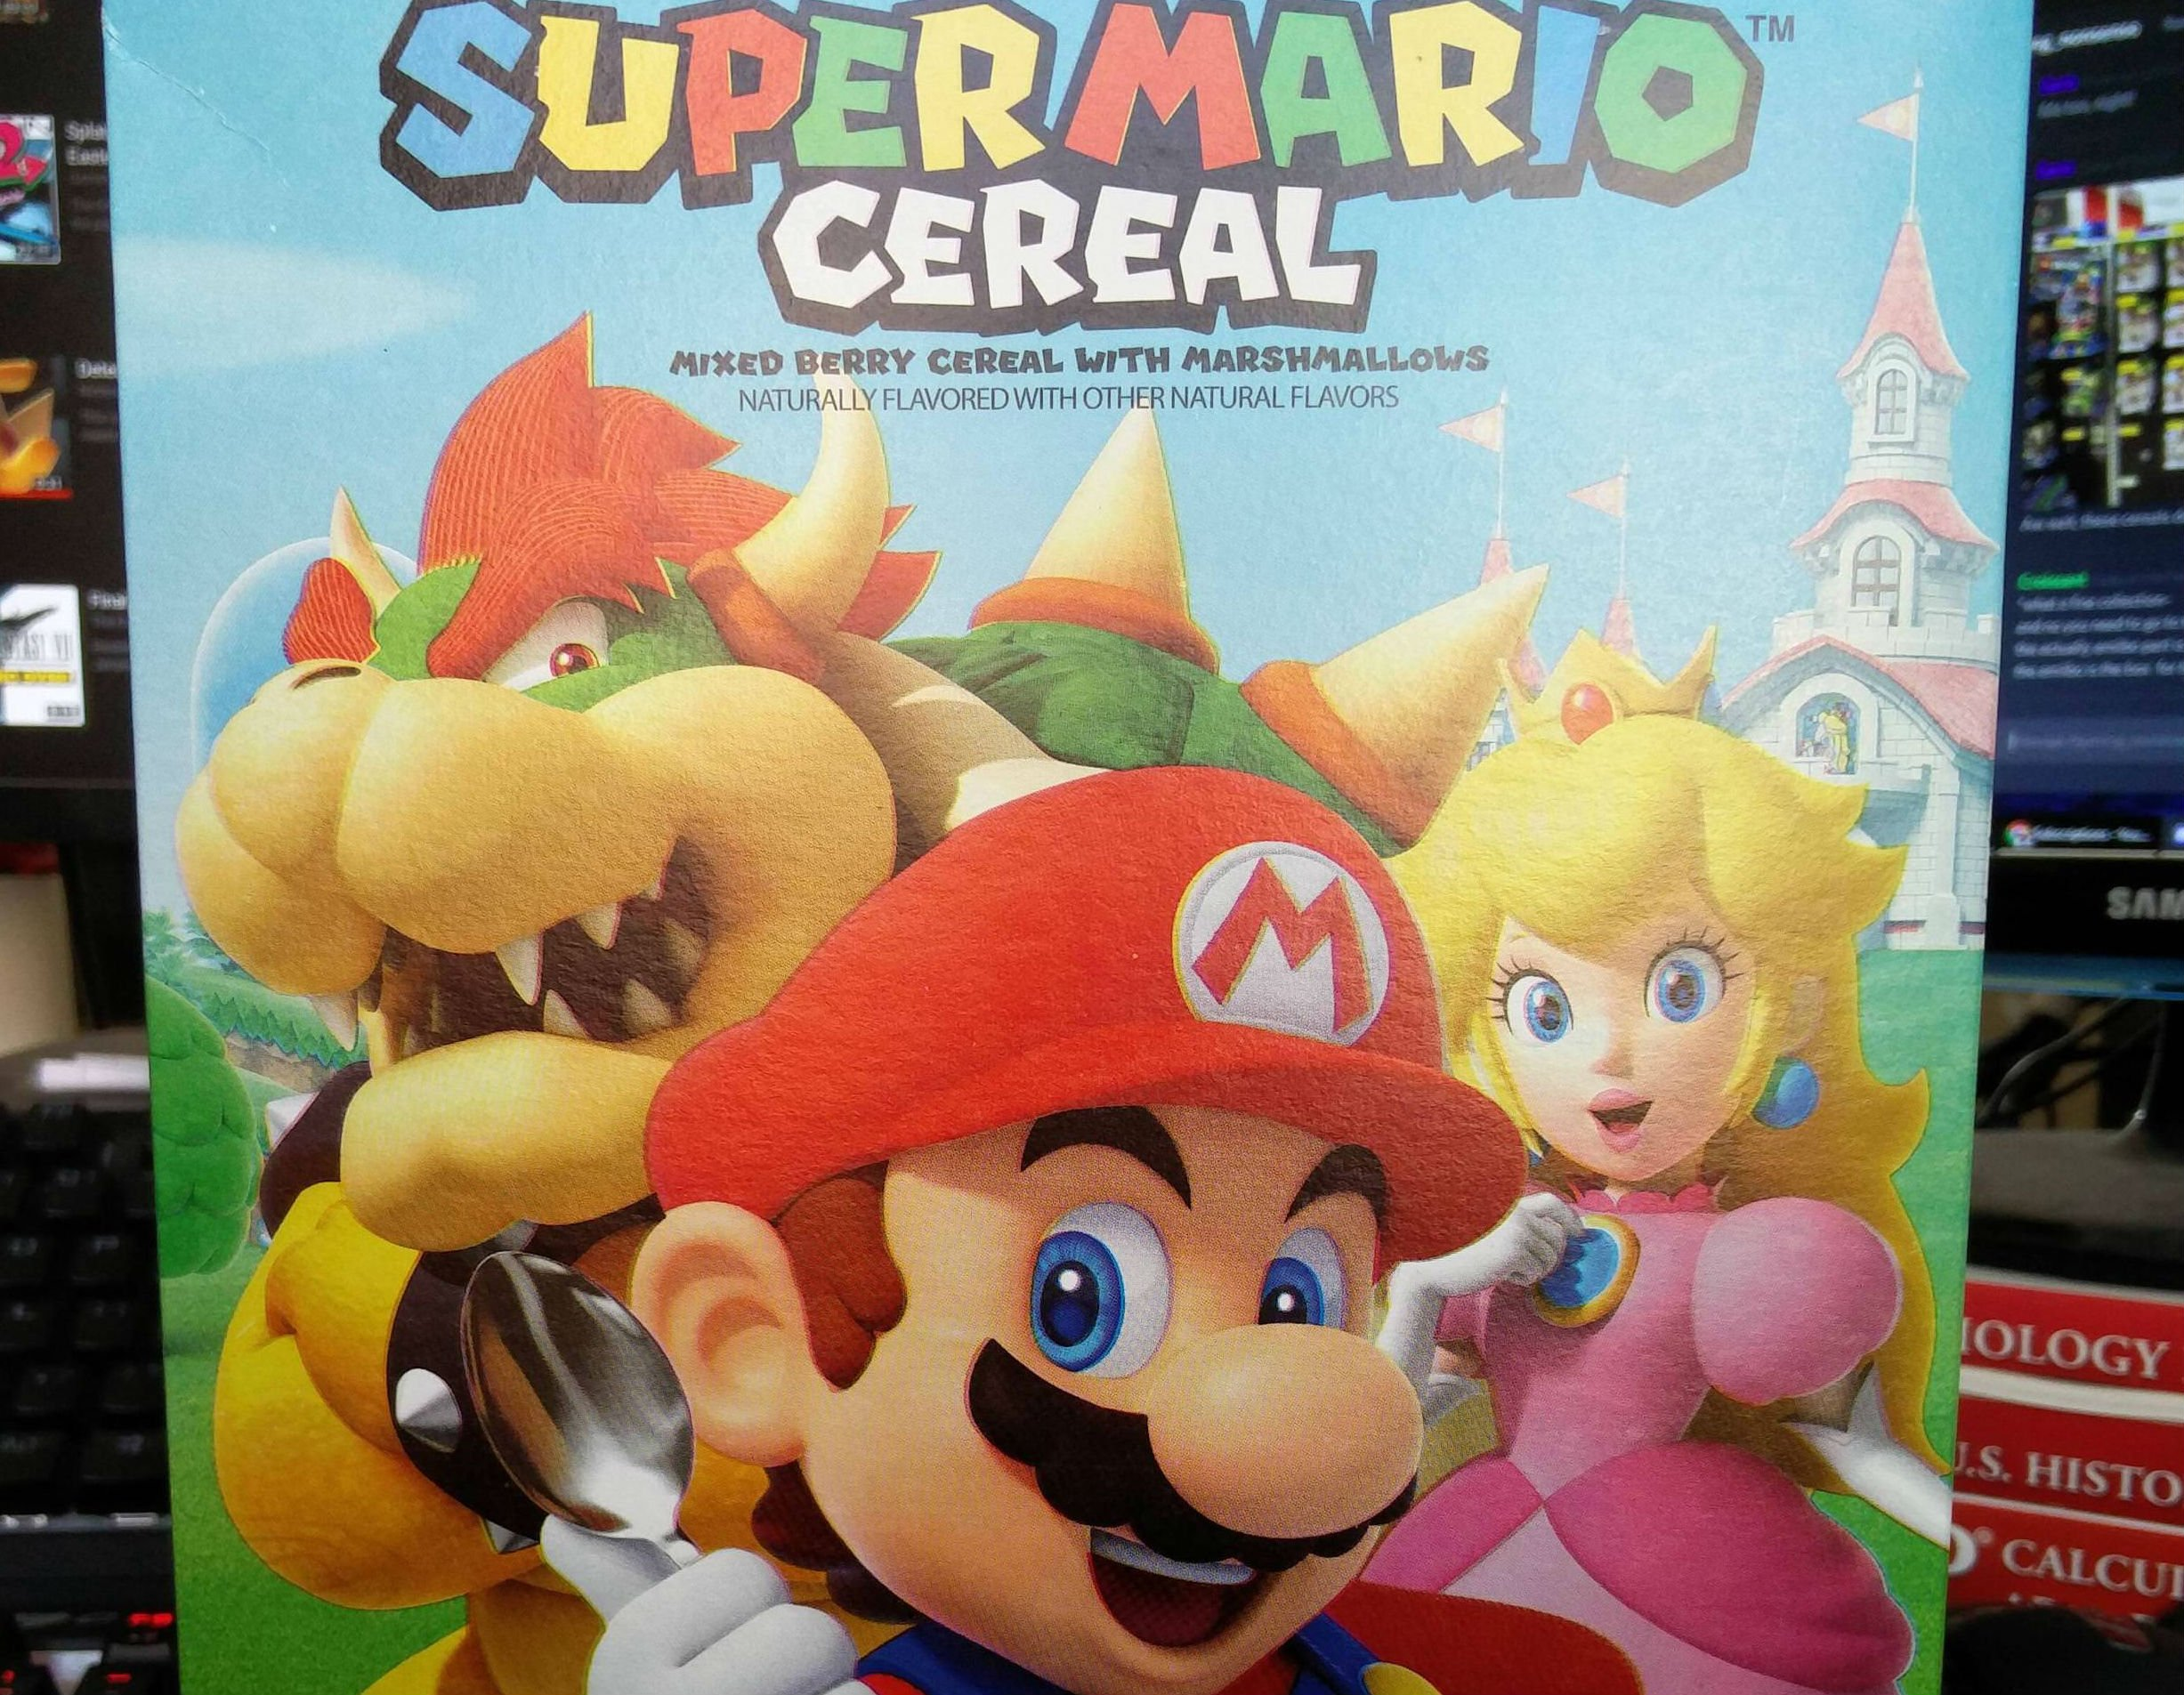 Super Mario Cereal now for sale without the amiibo functionality screenshot